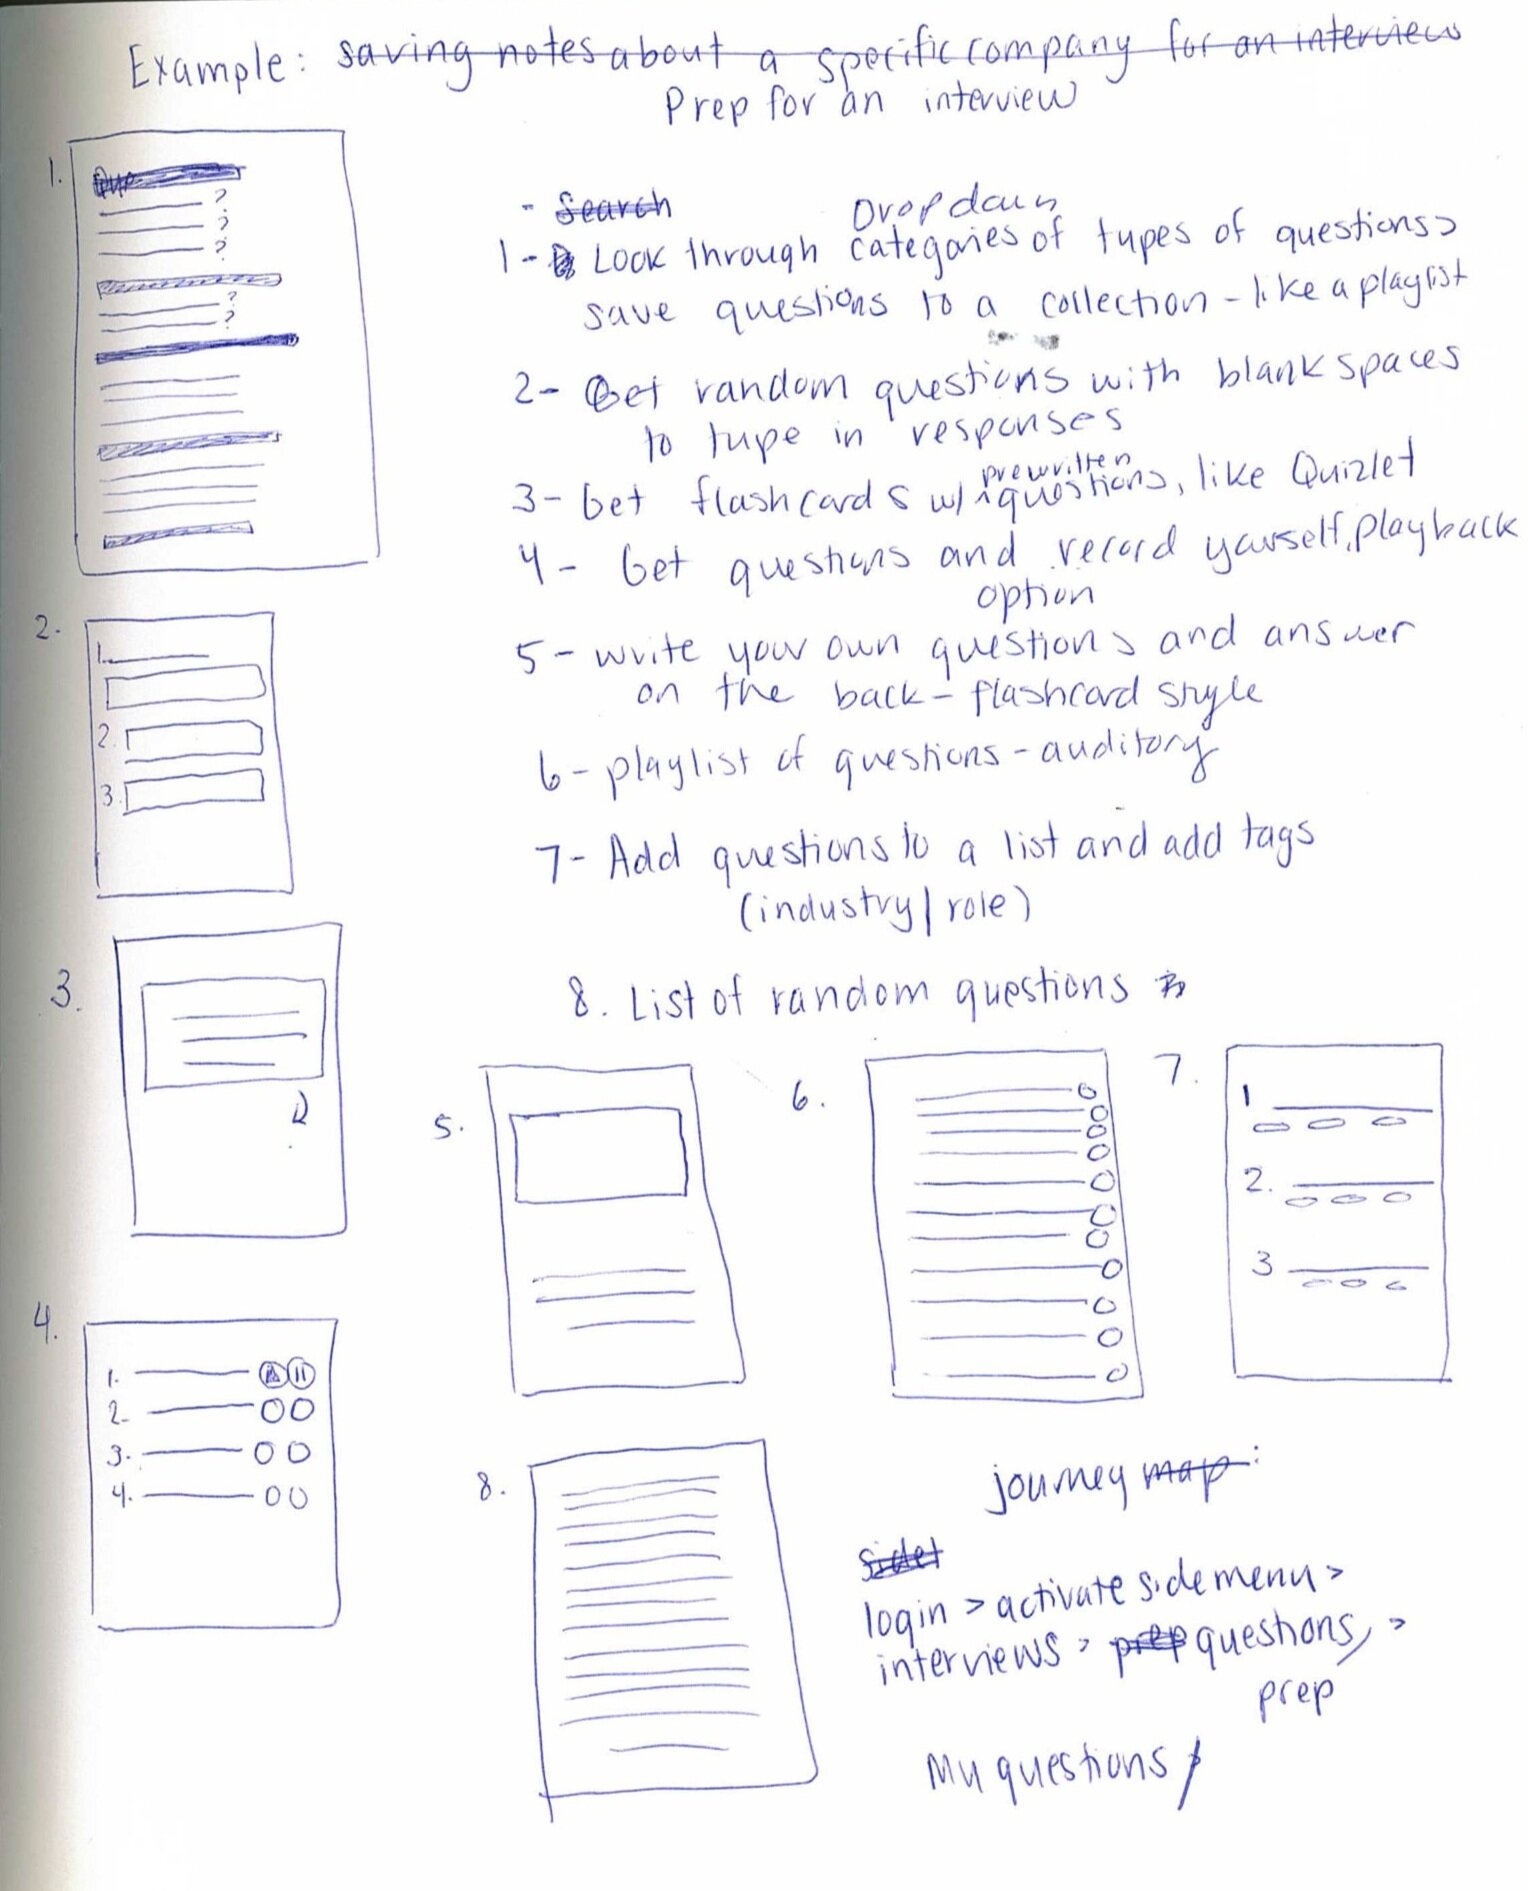 Brainstorming sprint for an app functionality that helps the user prepare for an interview